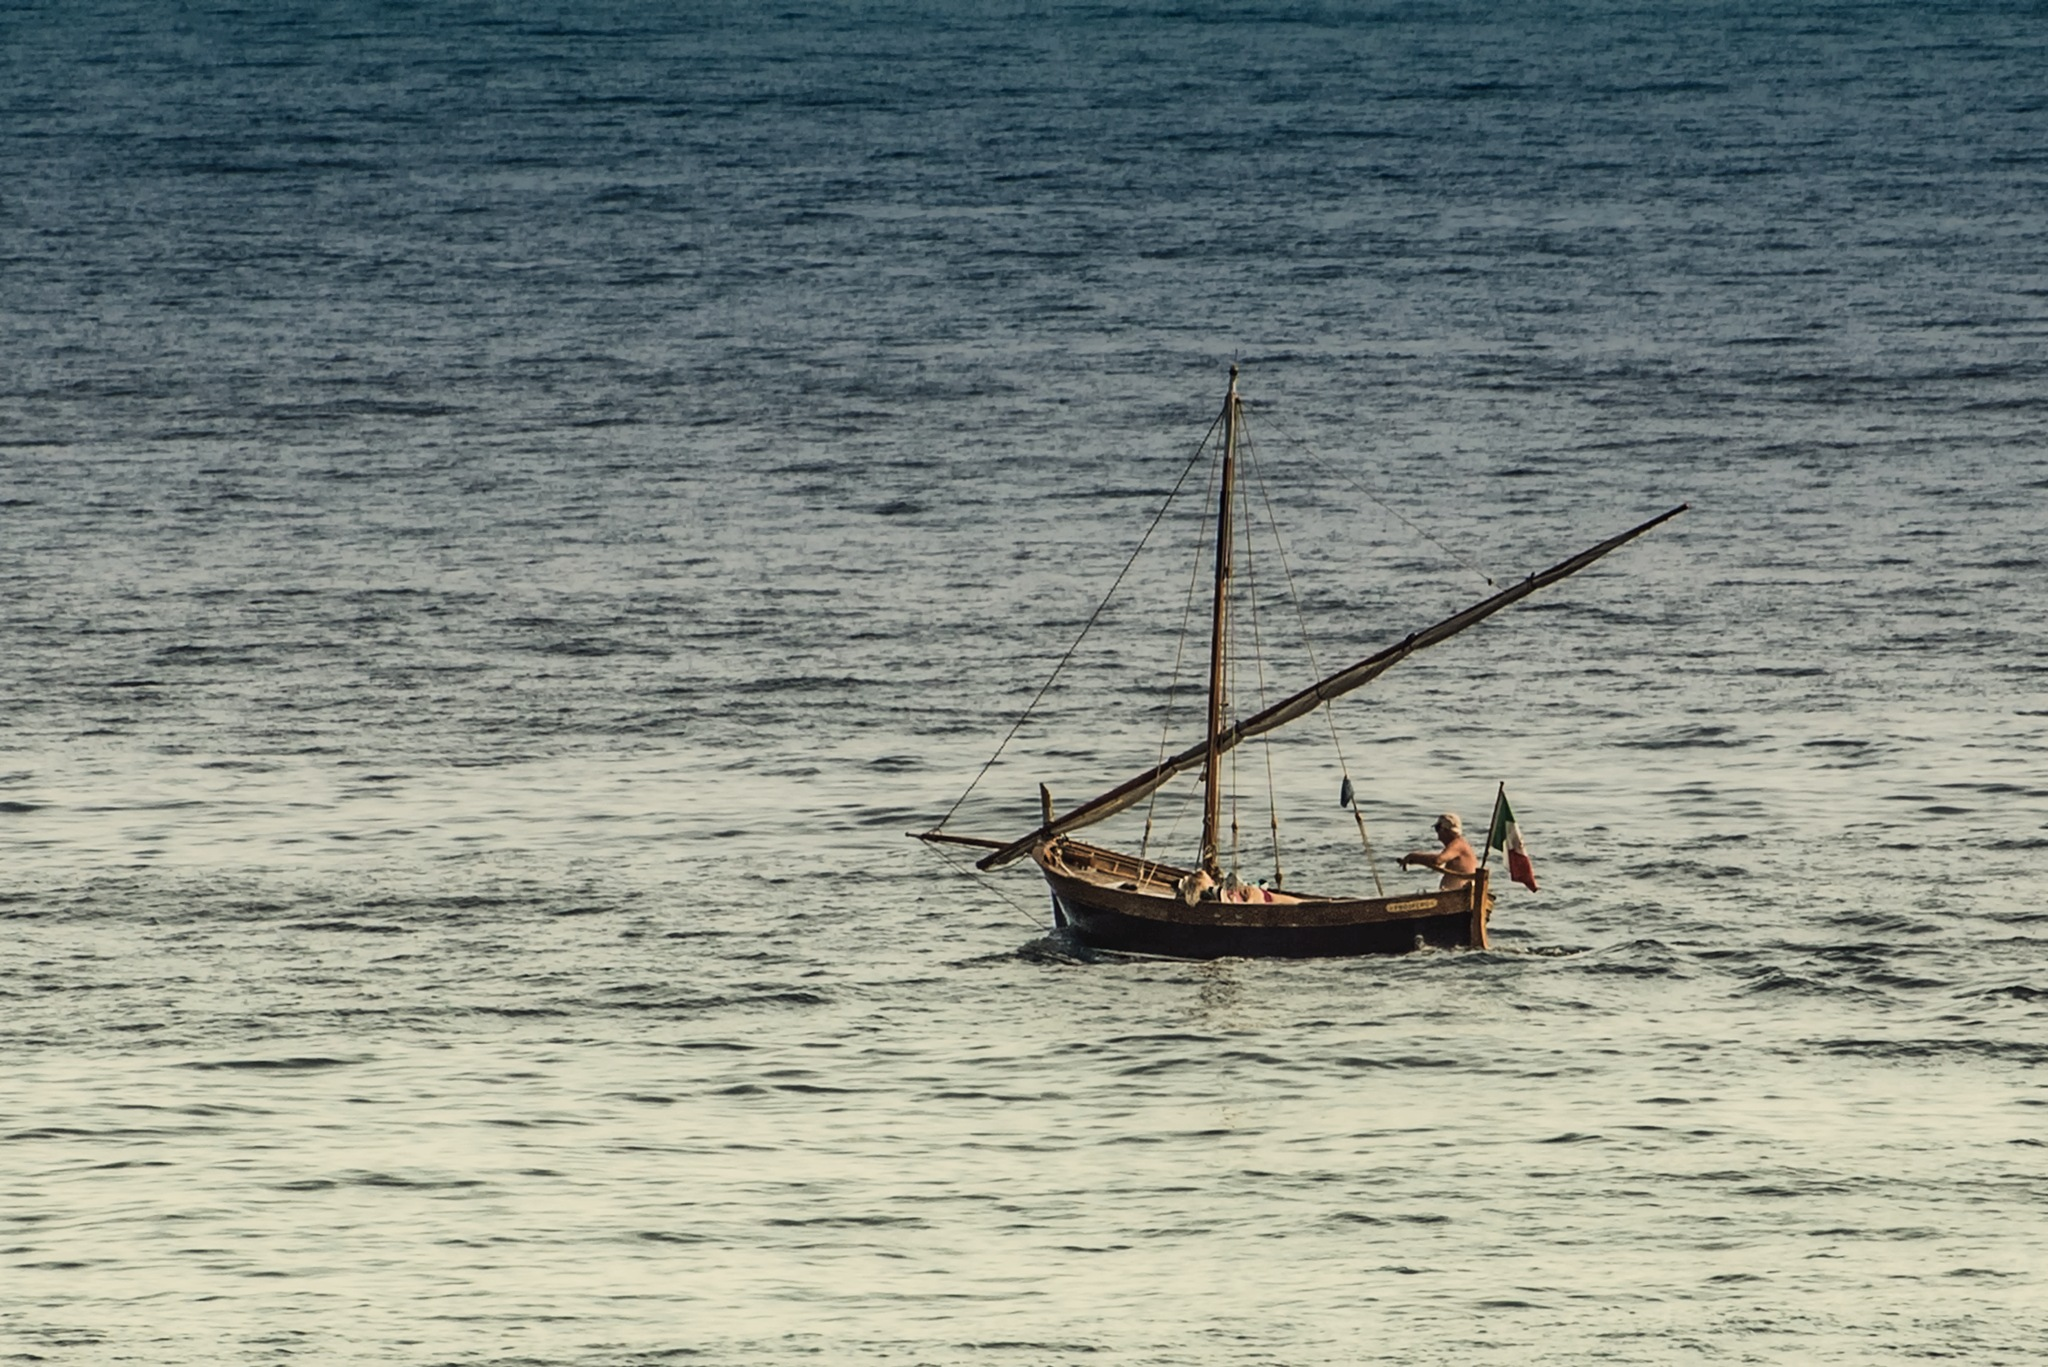 sailing on a quiet sea by ernesto amato